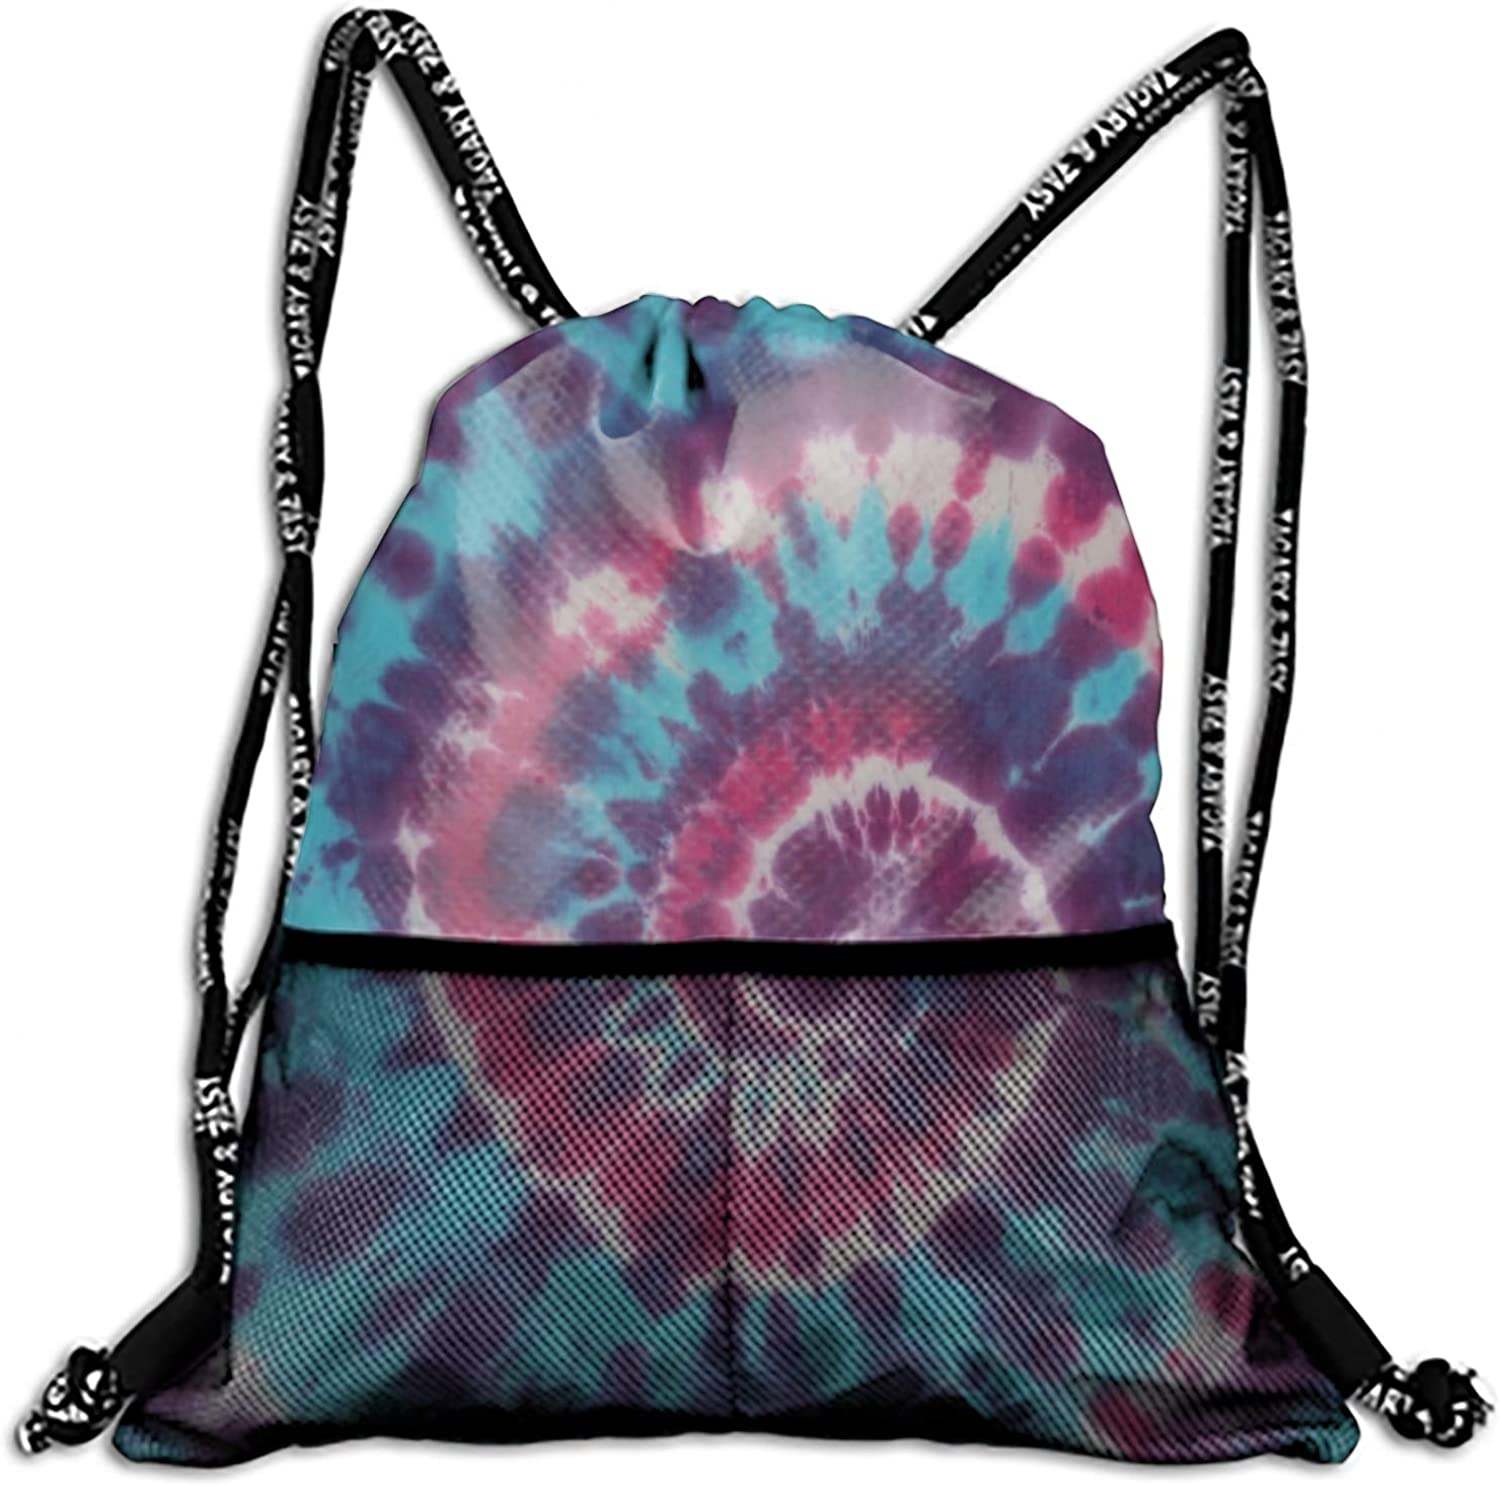 Tie Dye Drawstring Backpack String Bag Nice Gift for Boyfriend Girlfriend